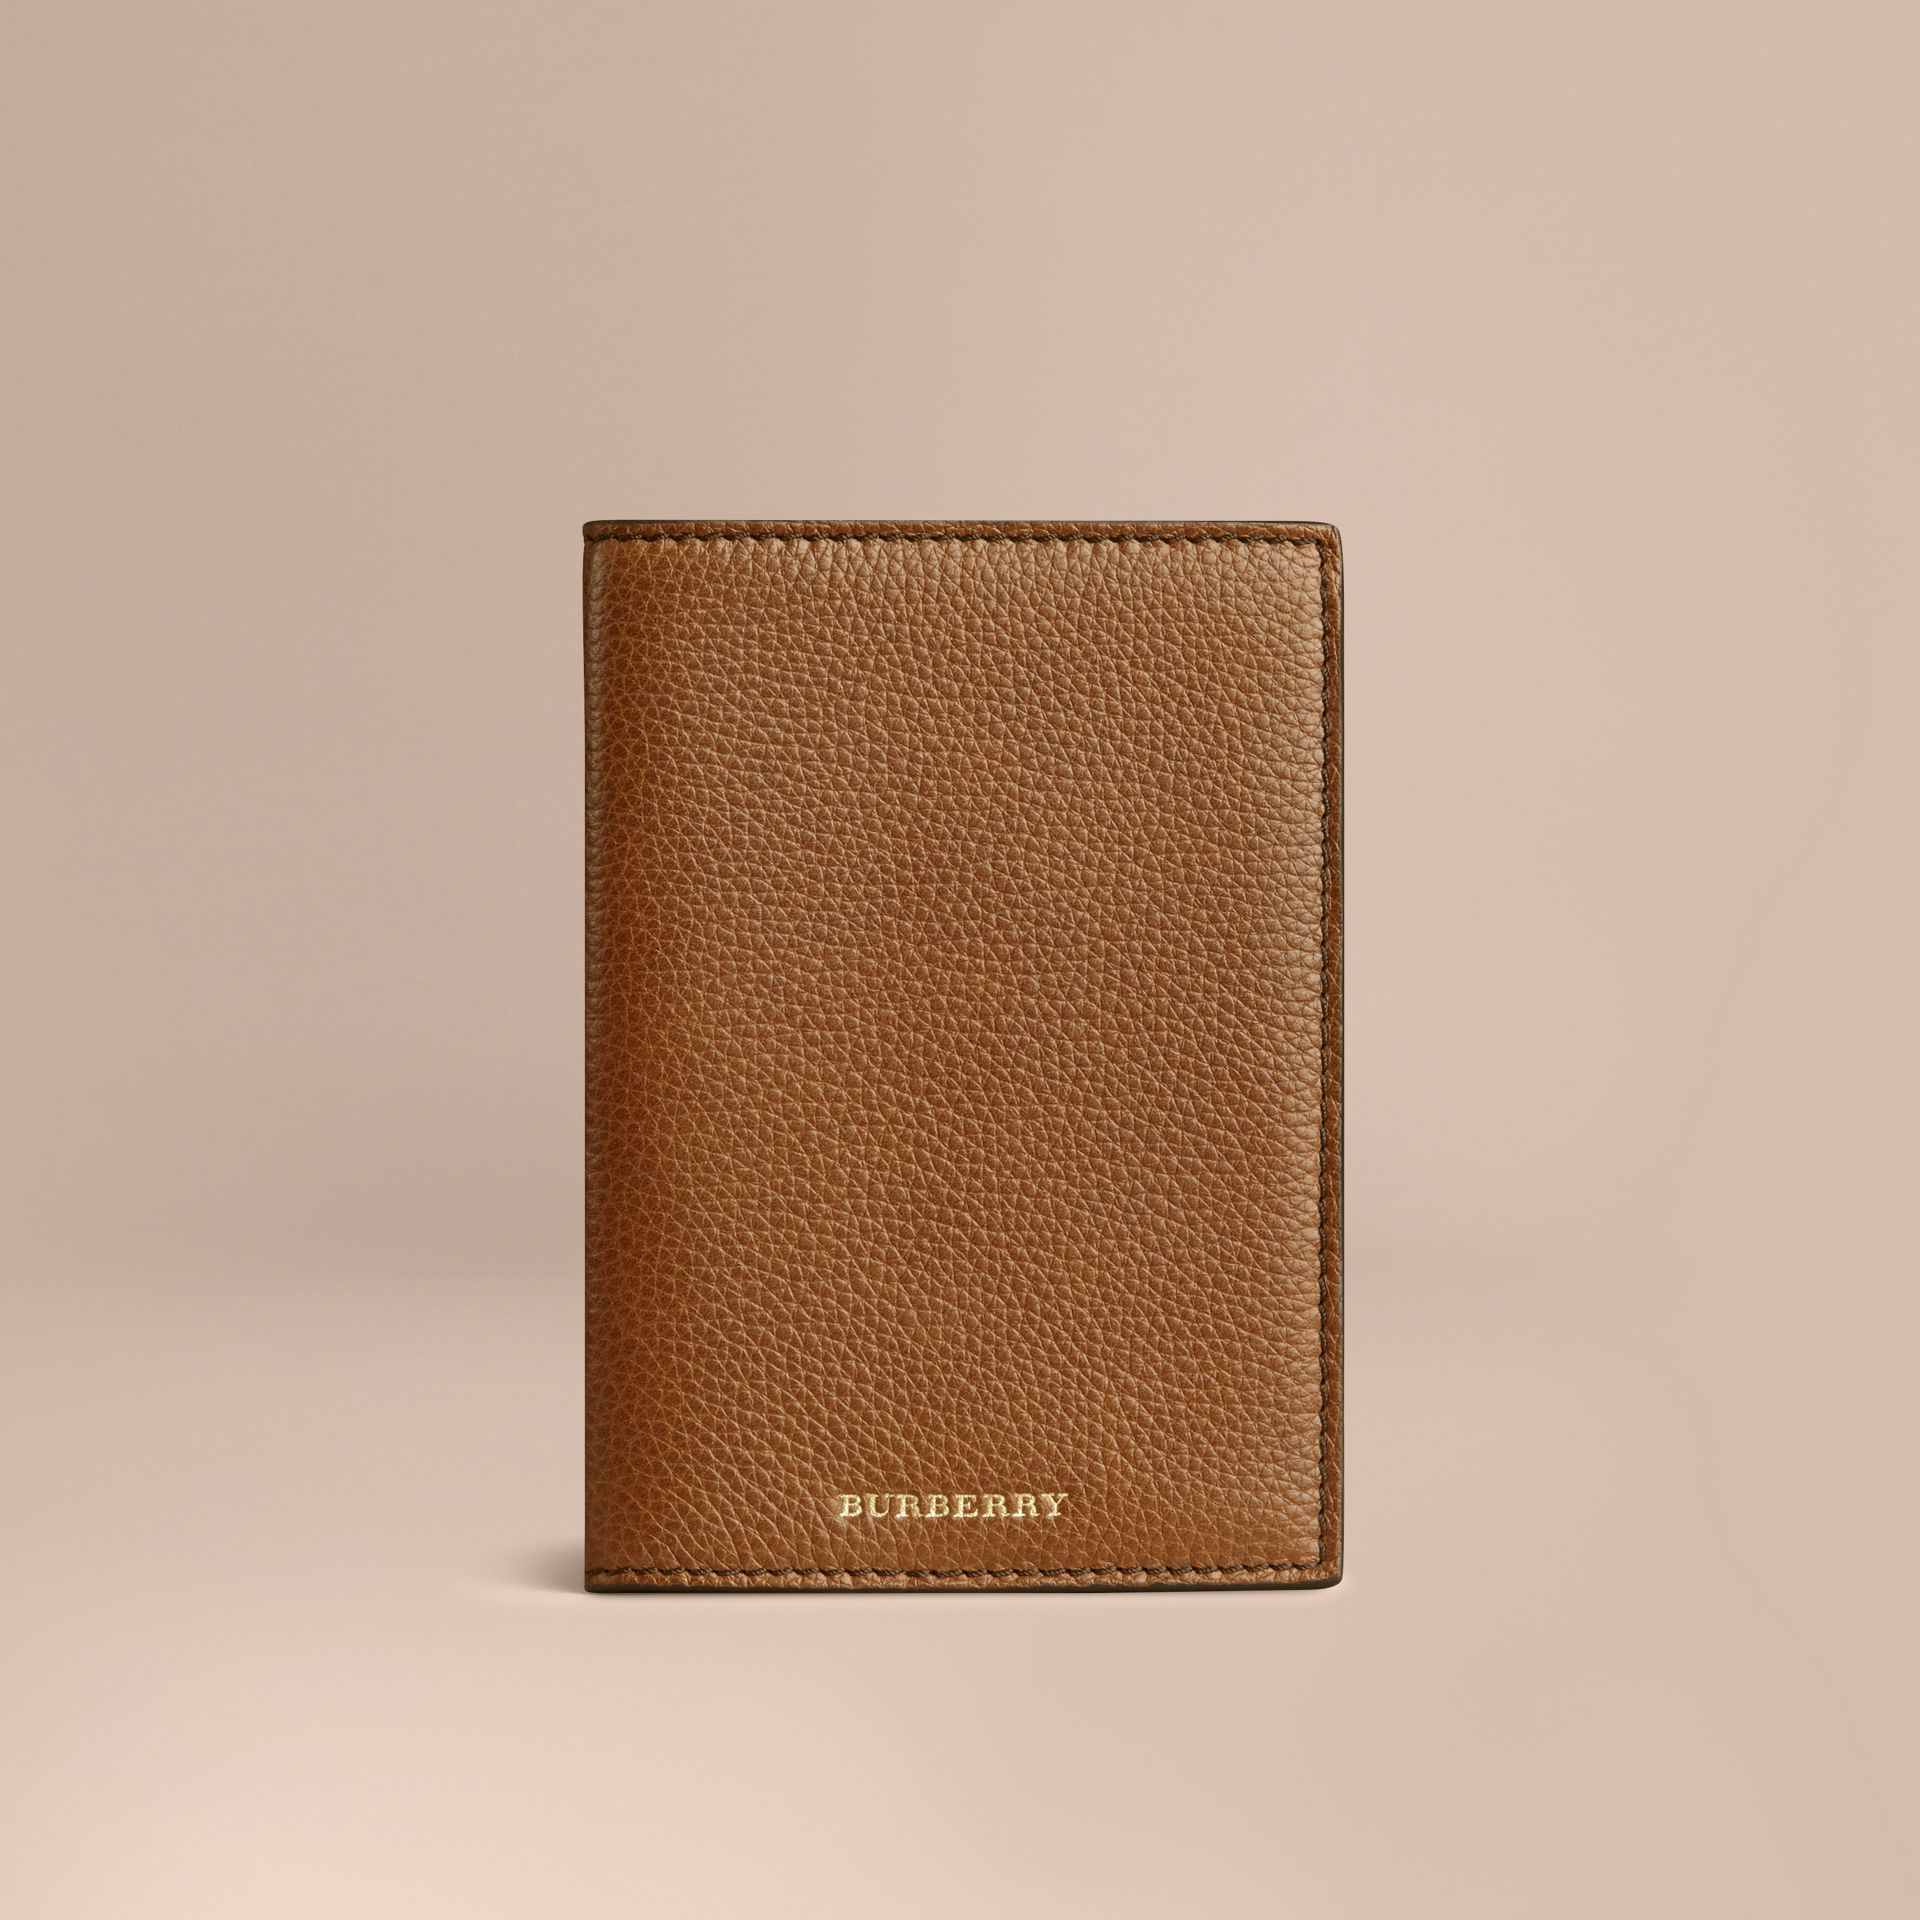 Grainy Leather Passport Cover in Tan | Burberry - gallery image 1